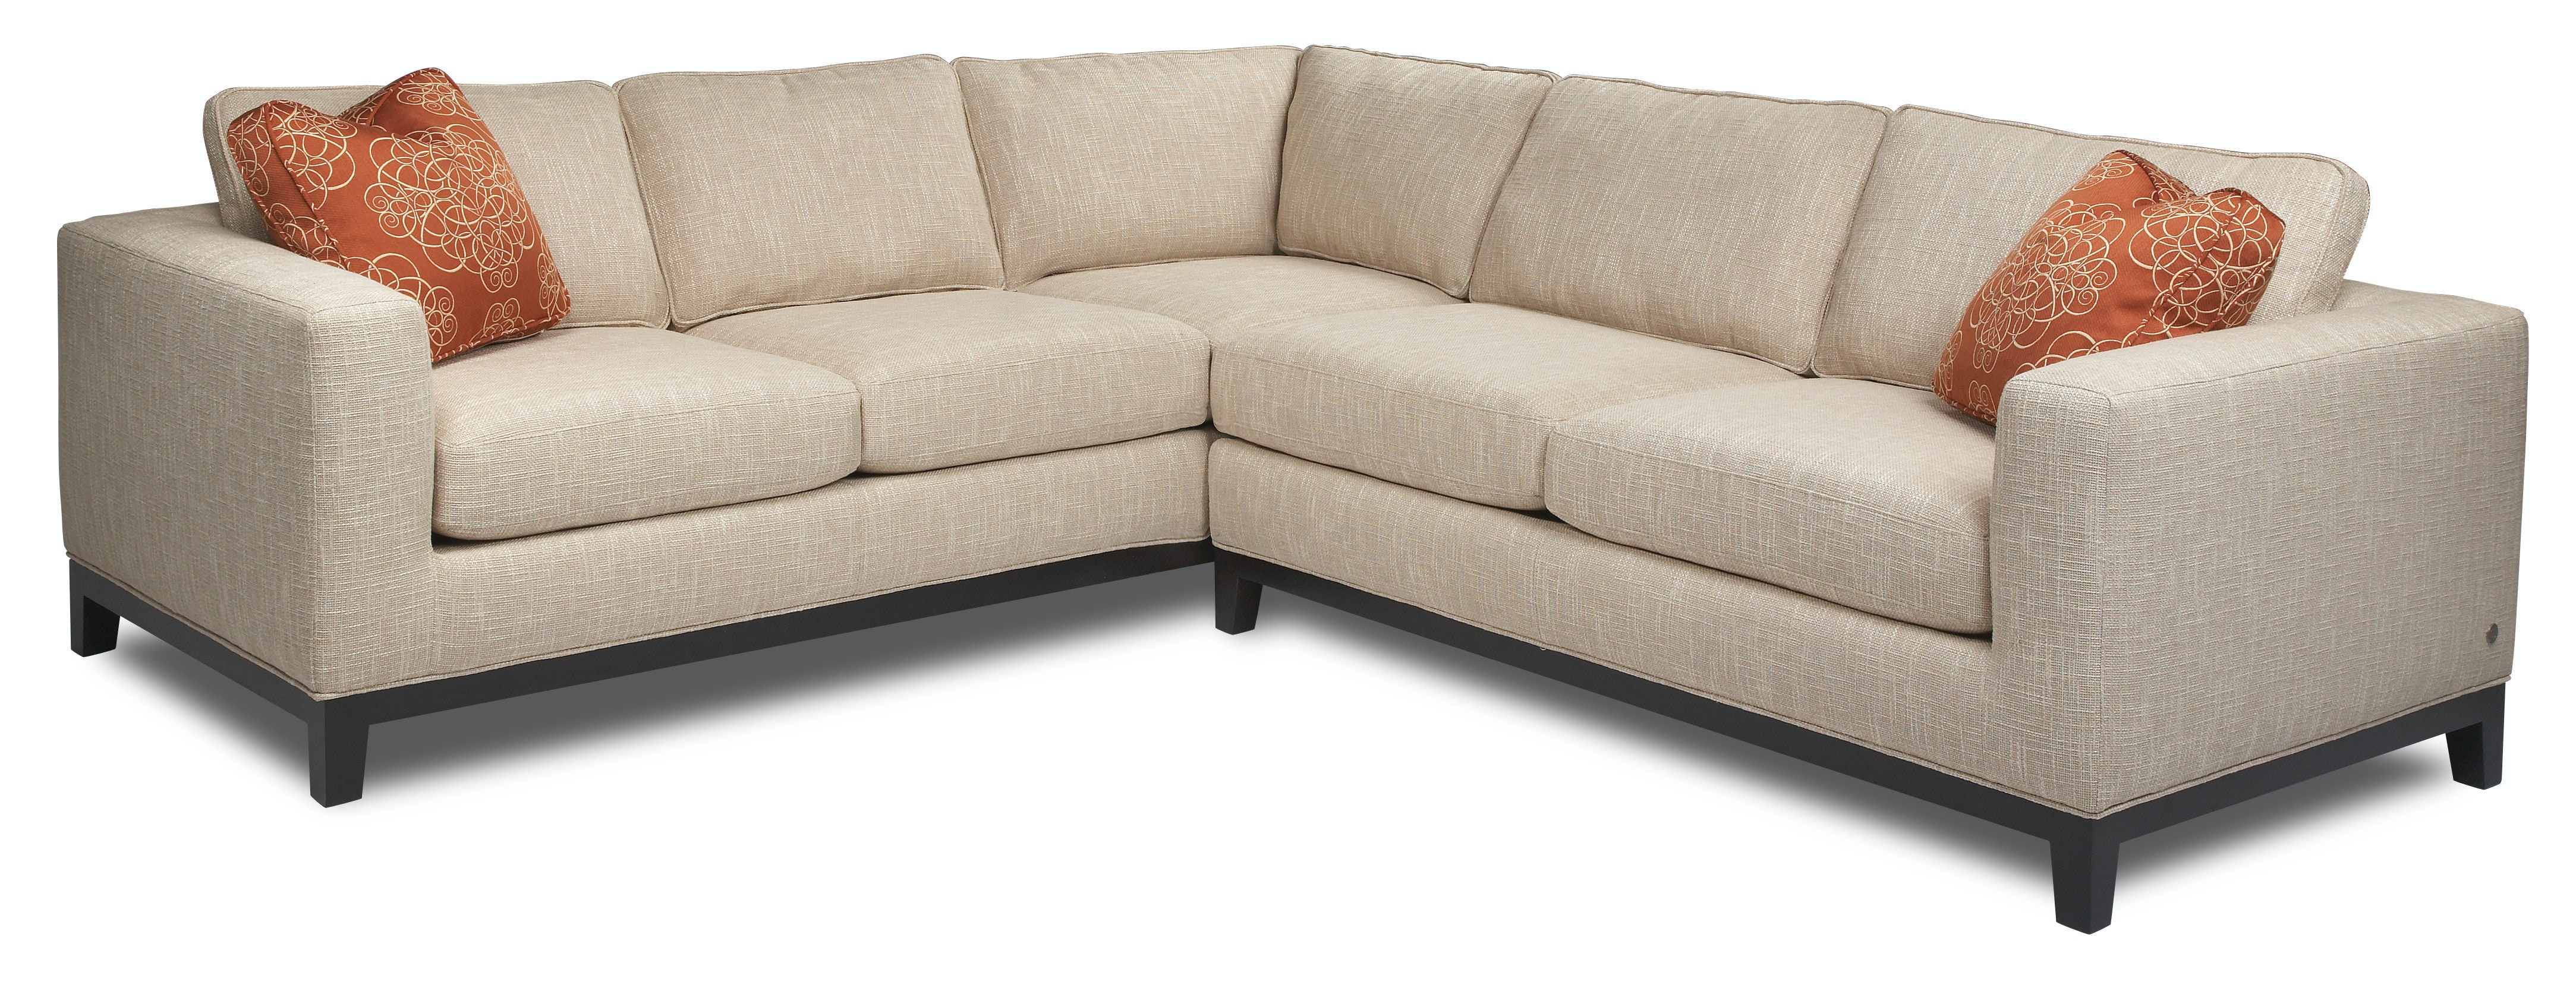 American Leather Sofa Prices Best House Interior Today